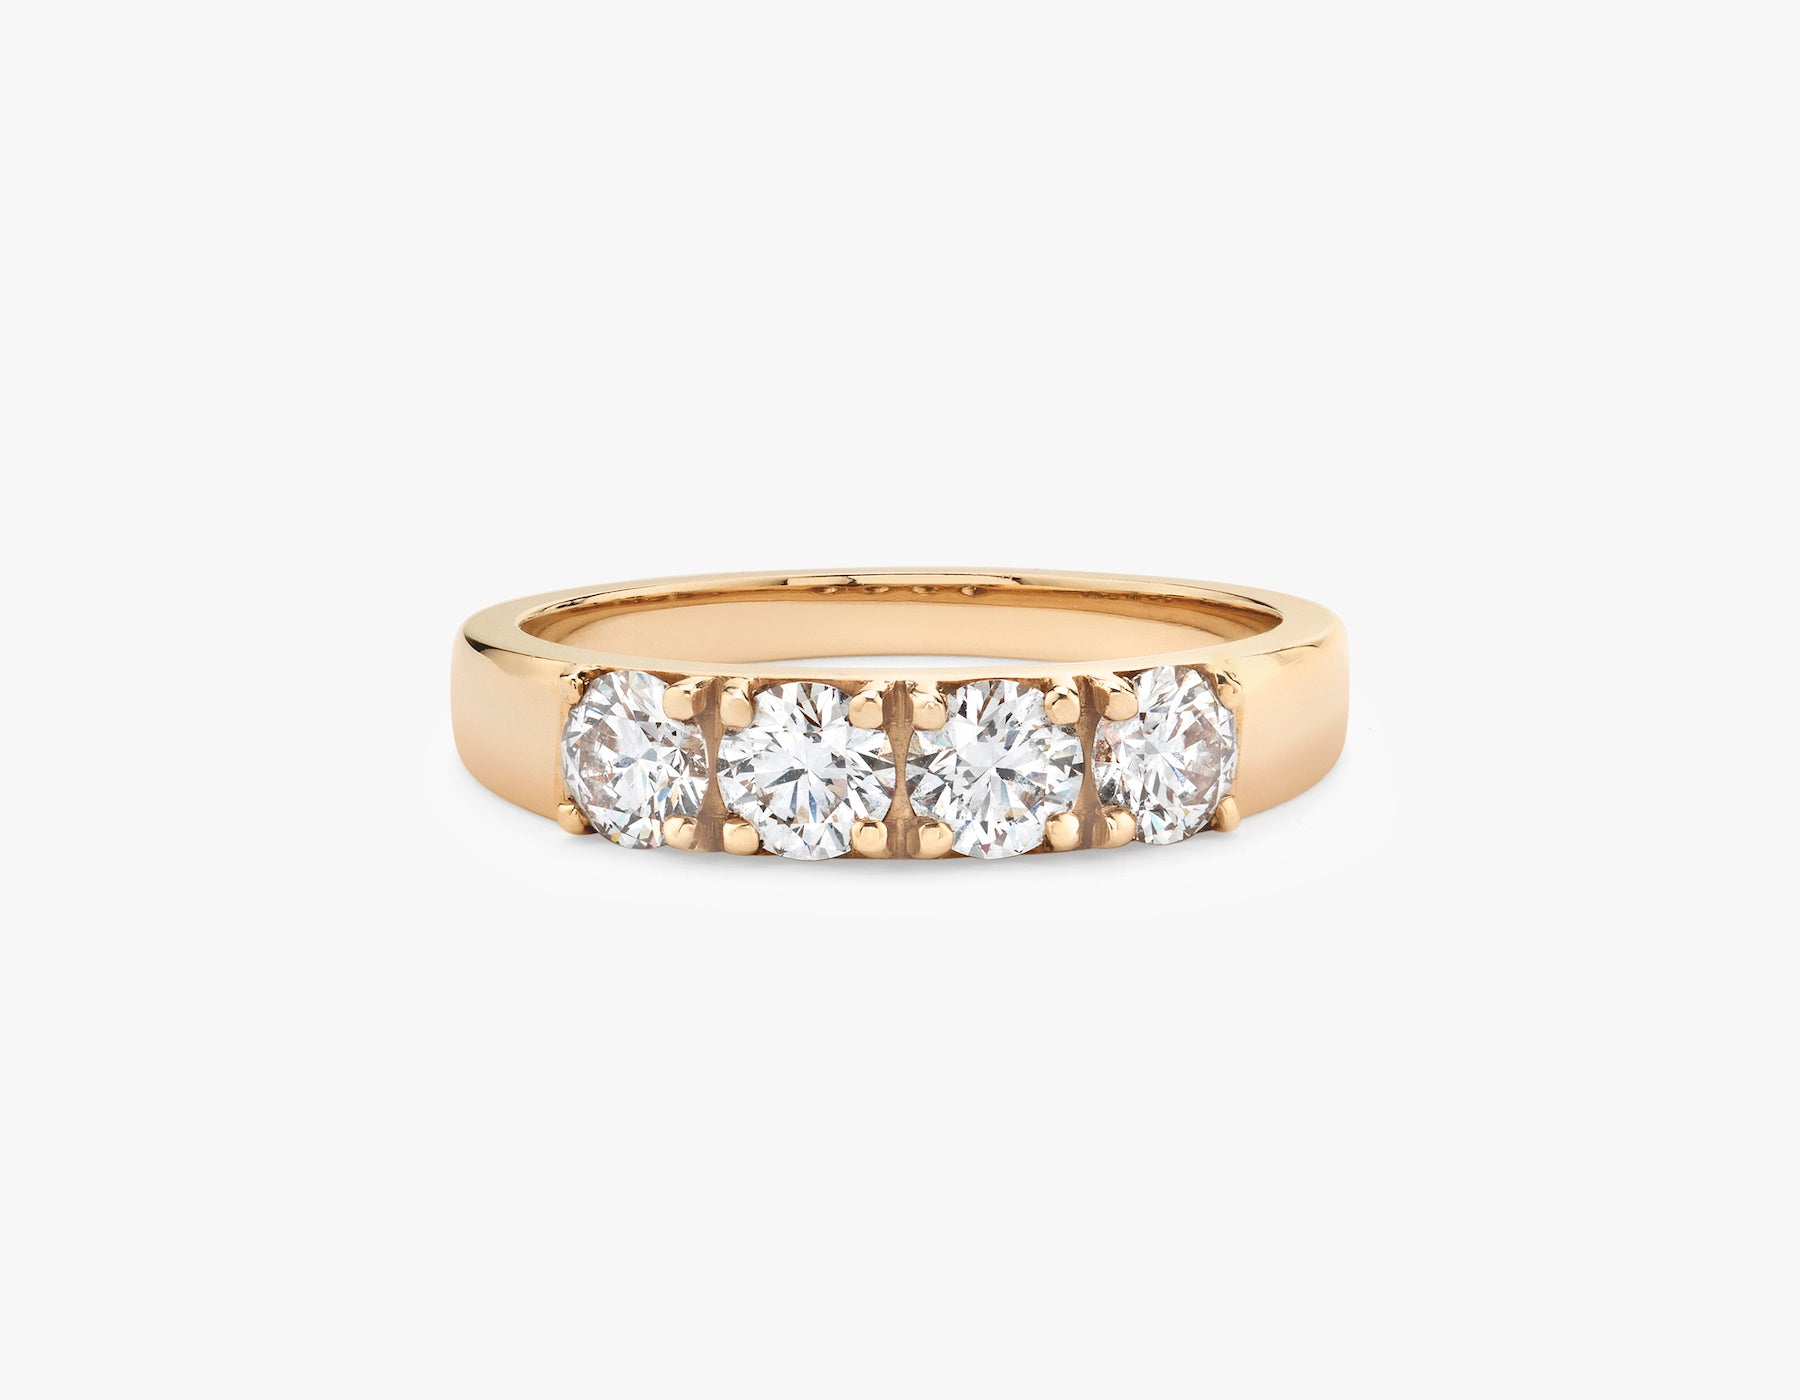 Vrai simple minimalist Round Diamond Tetrad Band .25ct Round Brilliant Diamond Ring, 14K Rose Gold